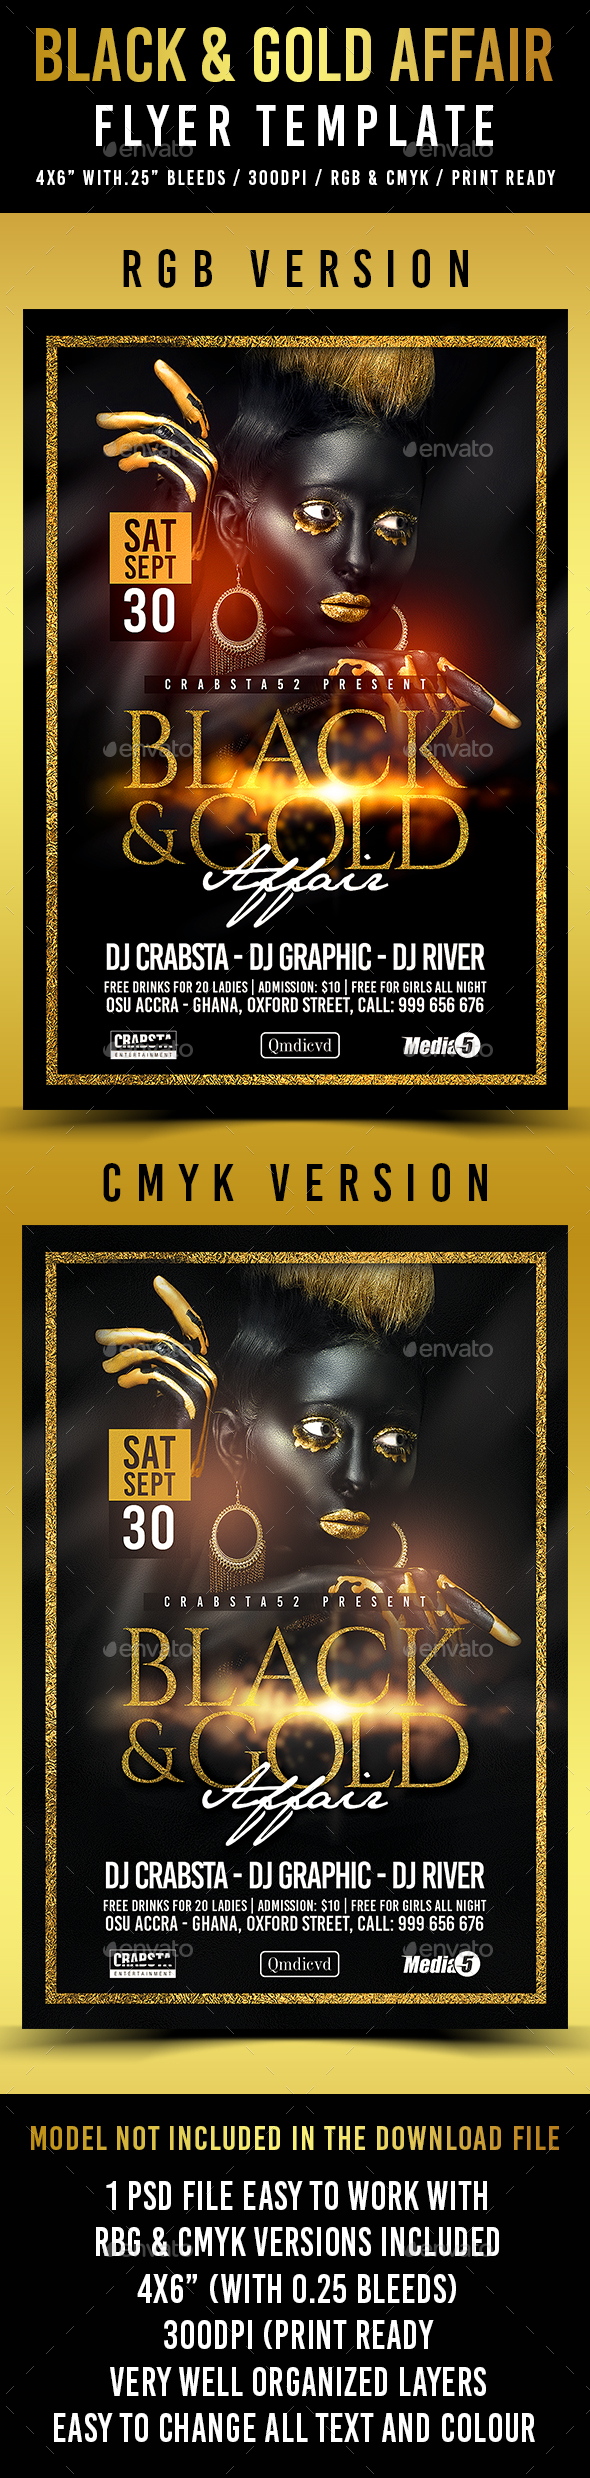 Black & Gold Affair Flyer Template - Flyers Print Templates